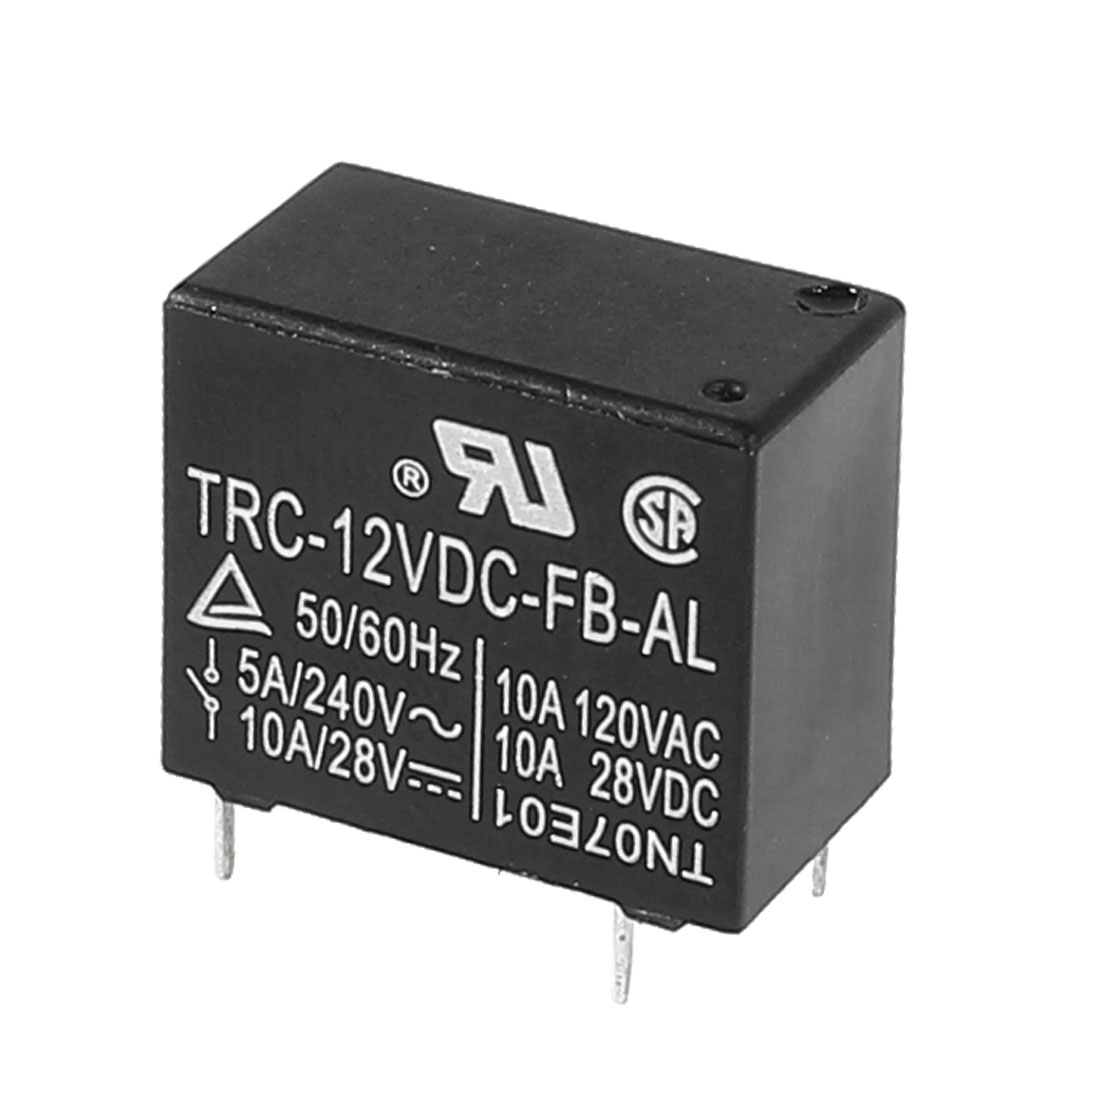 Coil DC 12V 4 Soldering Pin SPST General Purpose Power Relay Black TRC-12VDC-FB-AL